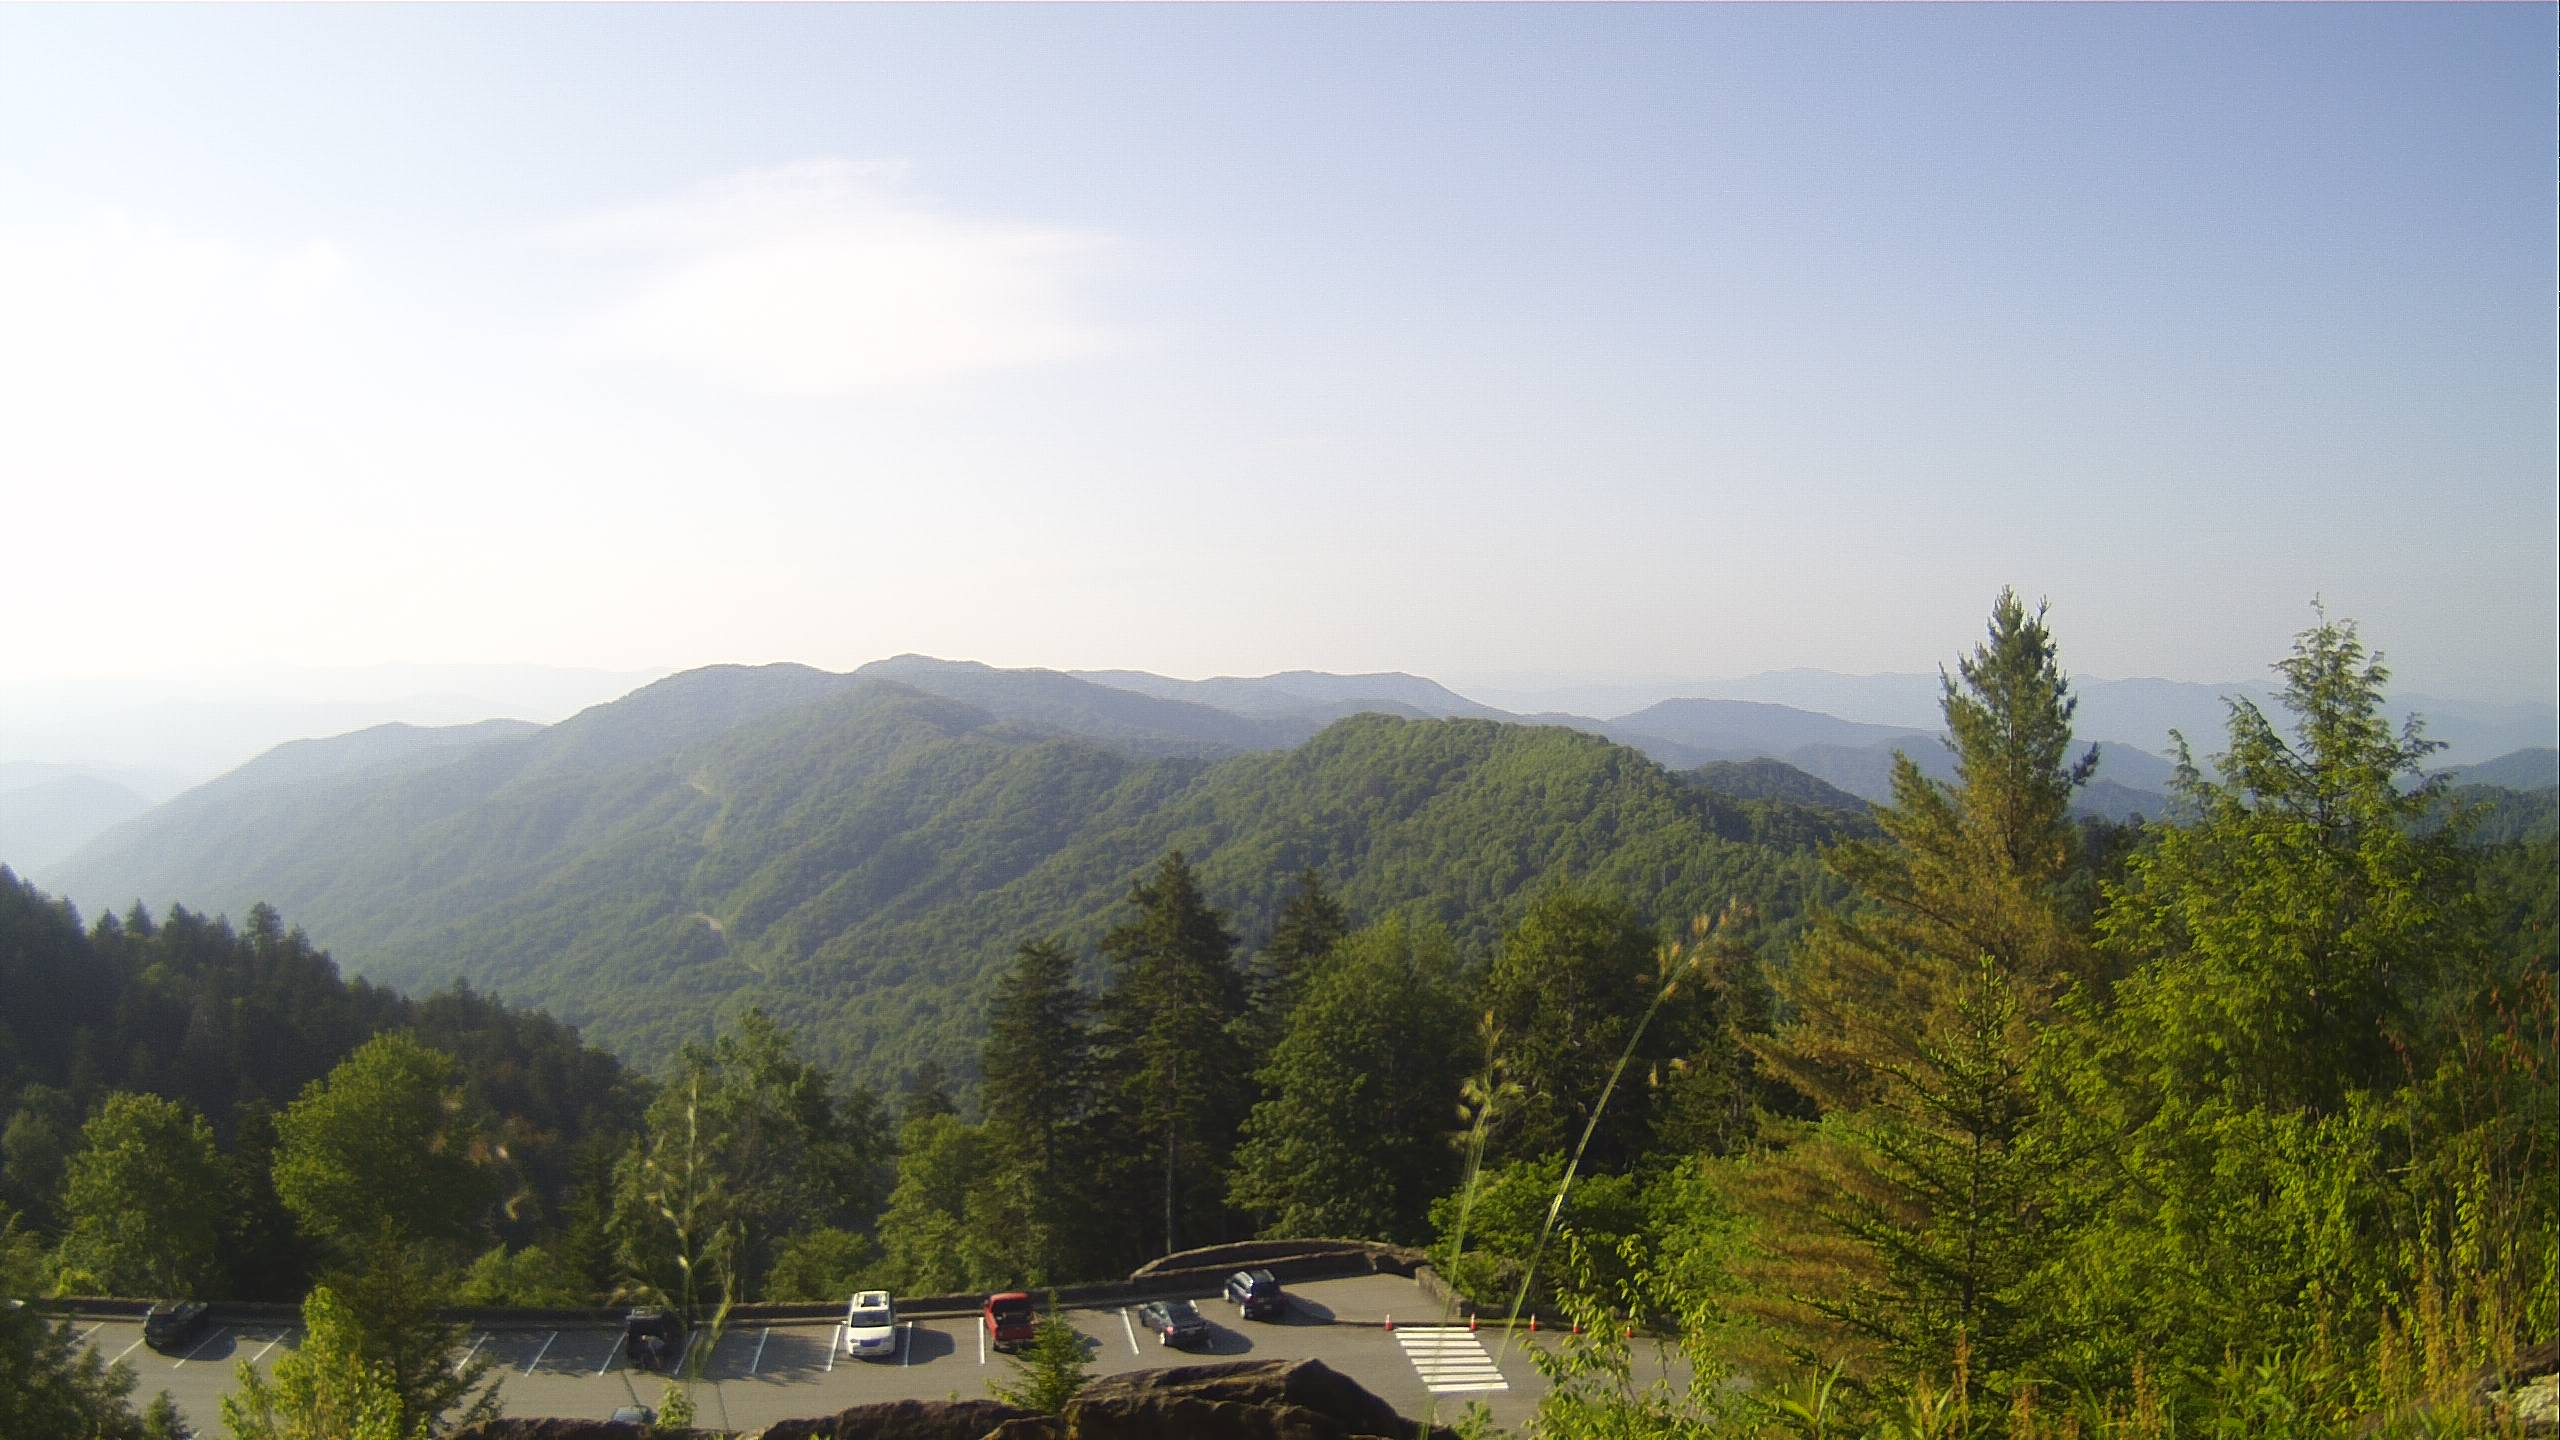 view of Newfound Gap Looking South